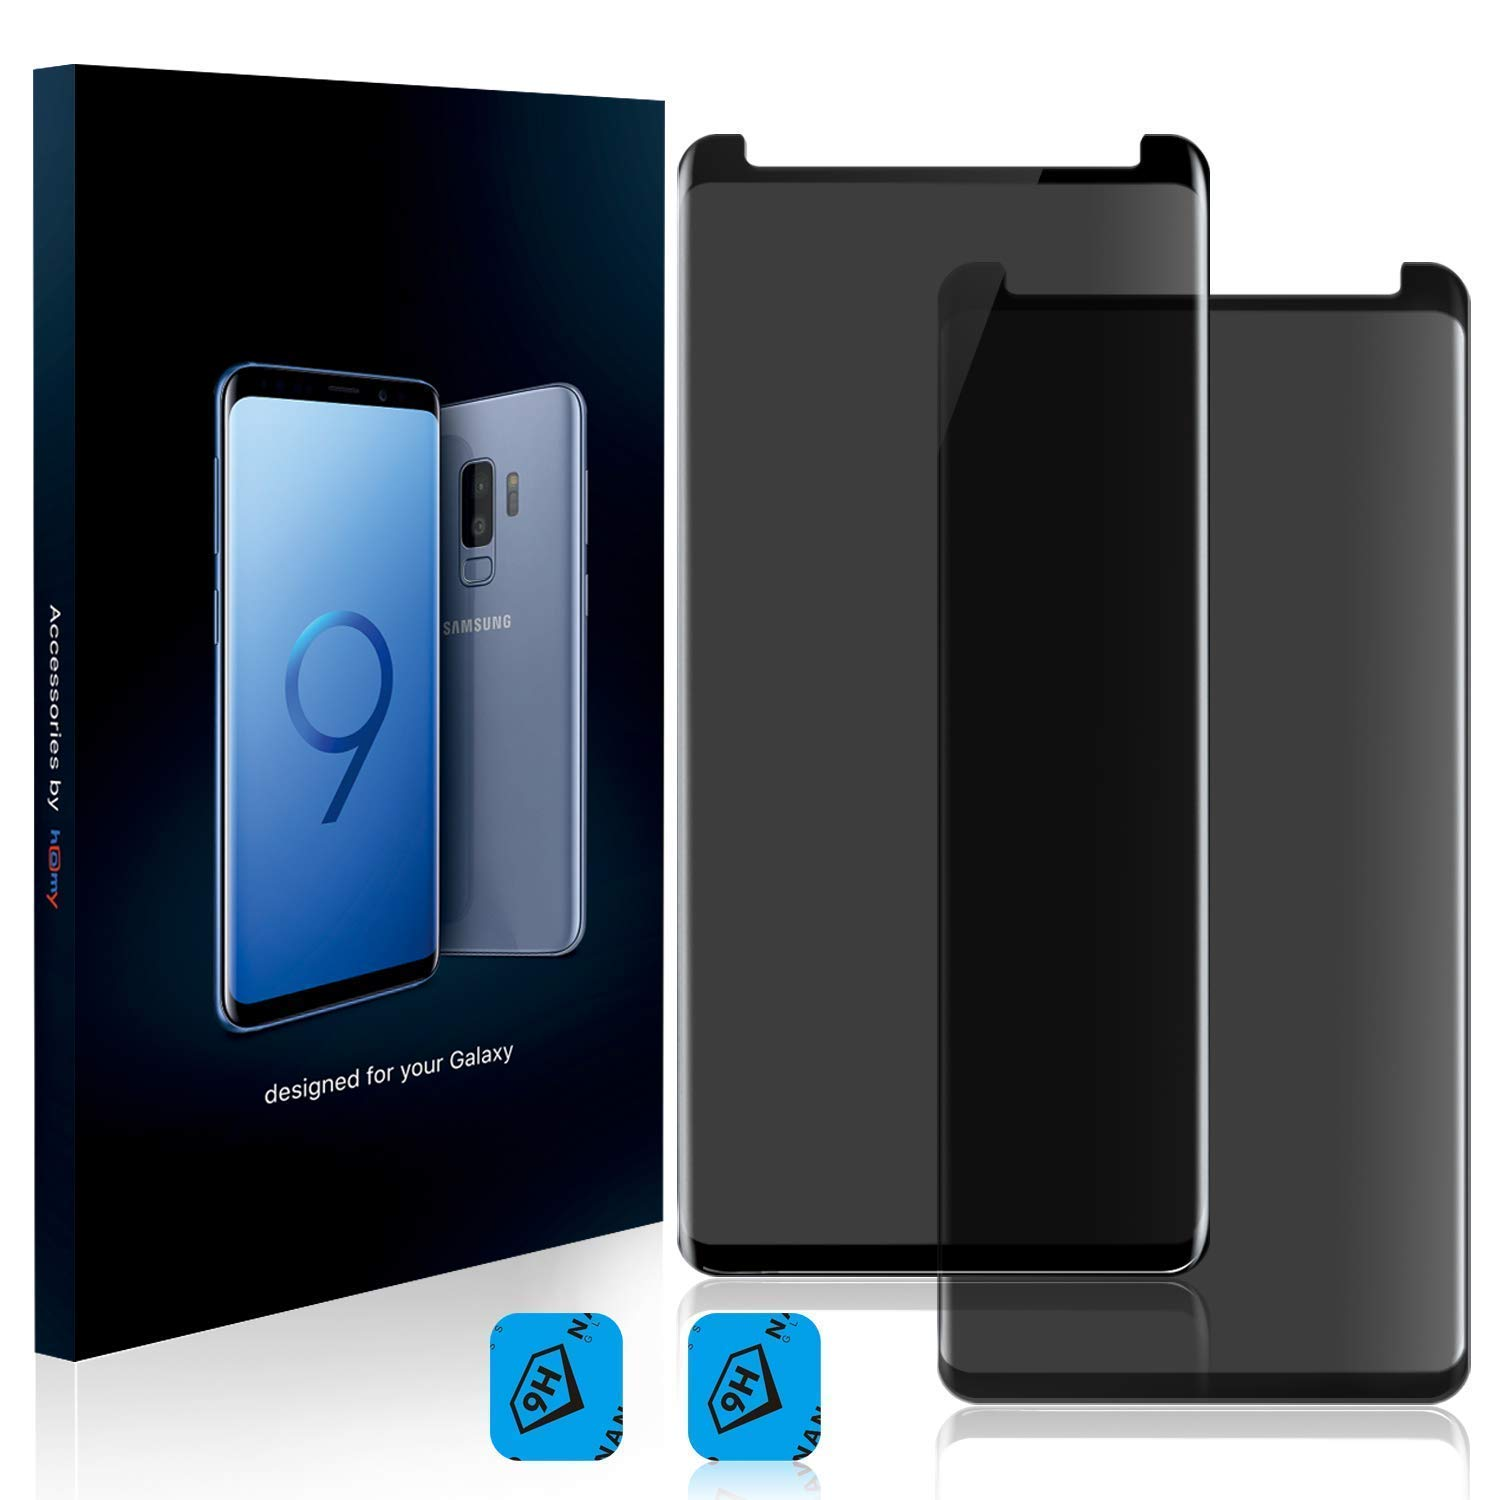 Homy Compatible Privacy UHD Screen Protector for Samsung Galaxy S9 Plus [2-Pack] - Free Camera Lens Cover. Anti Spy Filter Made of 9H Curved 3D High Clarity Full Cover Japanese Tempered Glass.